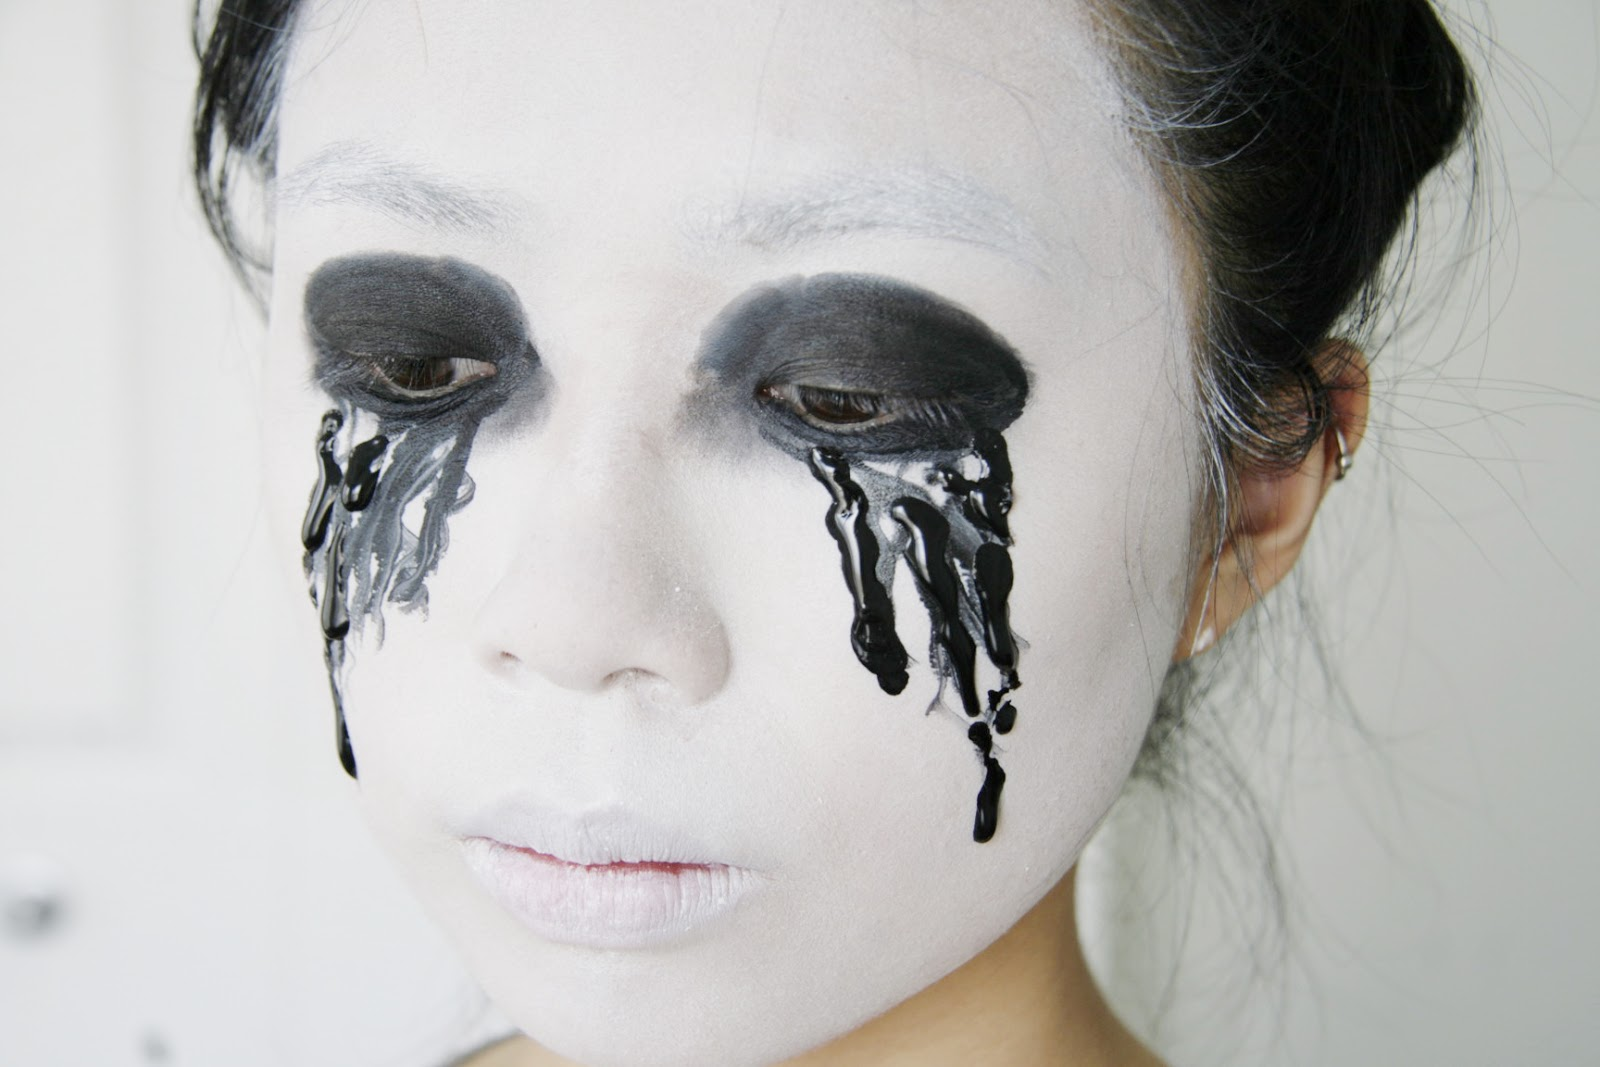 100+ [ Black And White Makeup Ideas For Halloween ] | Black Tie ...